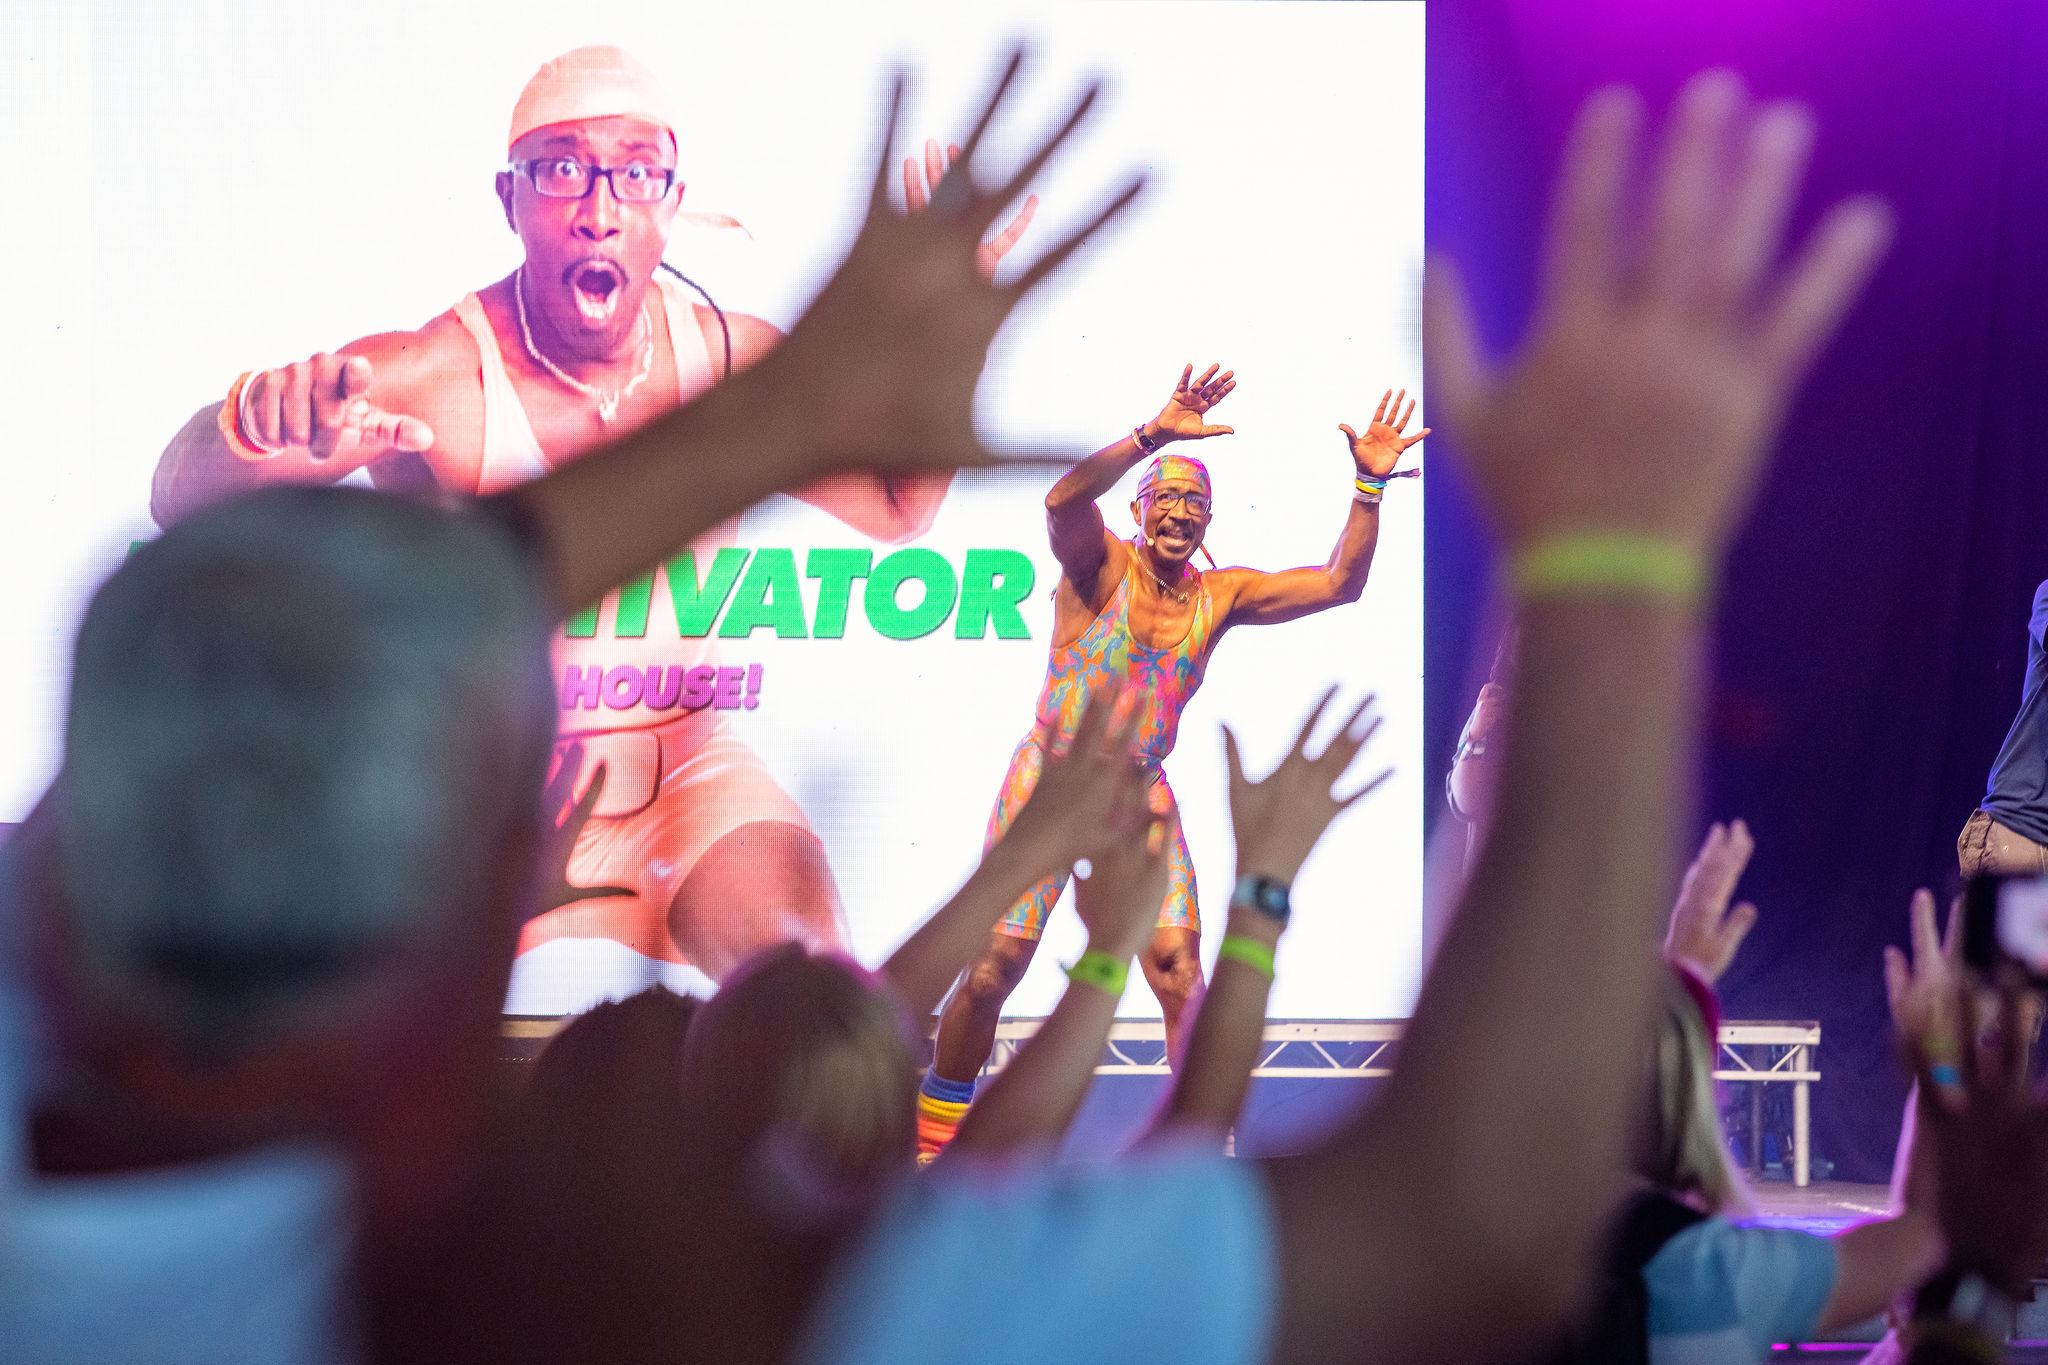 Day_BigTop_MrMotivator_MM-4593.jpg